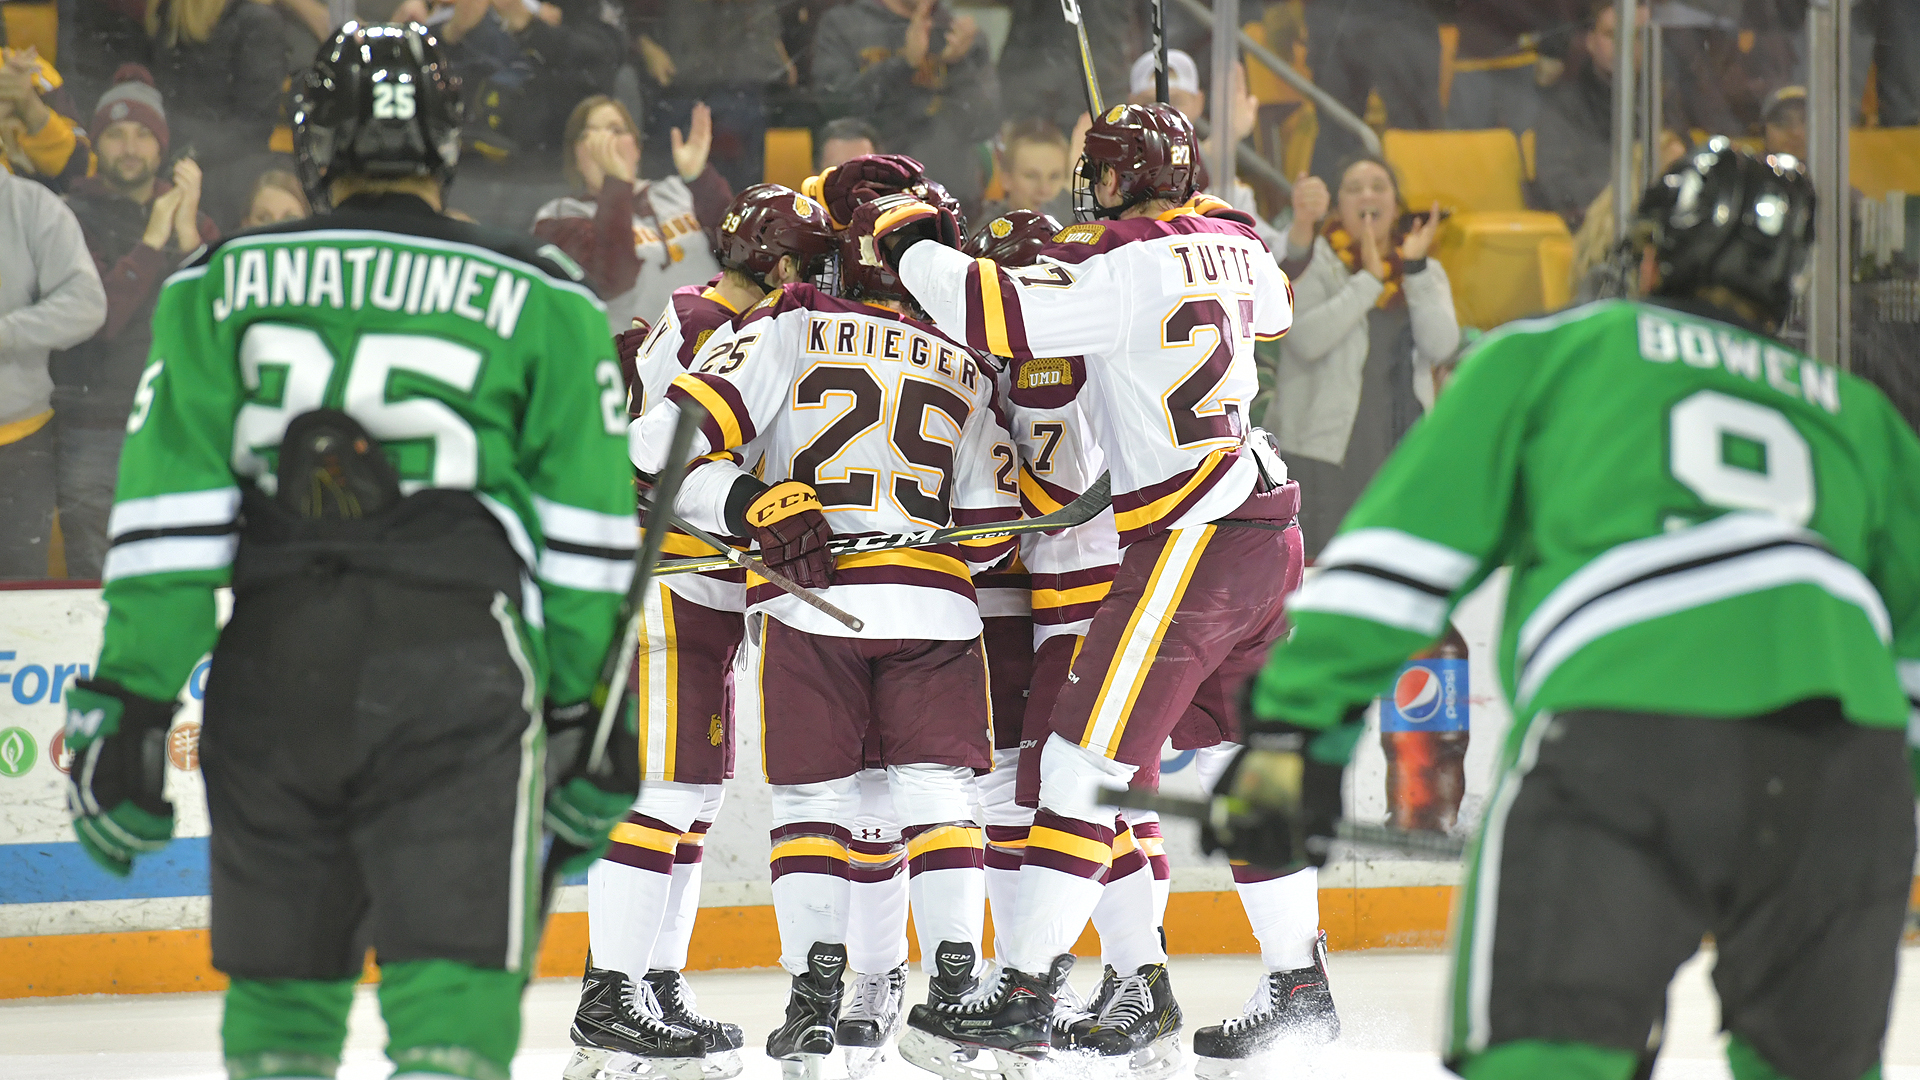 long-time rivals umd and north dakota to reunite this weekend in